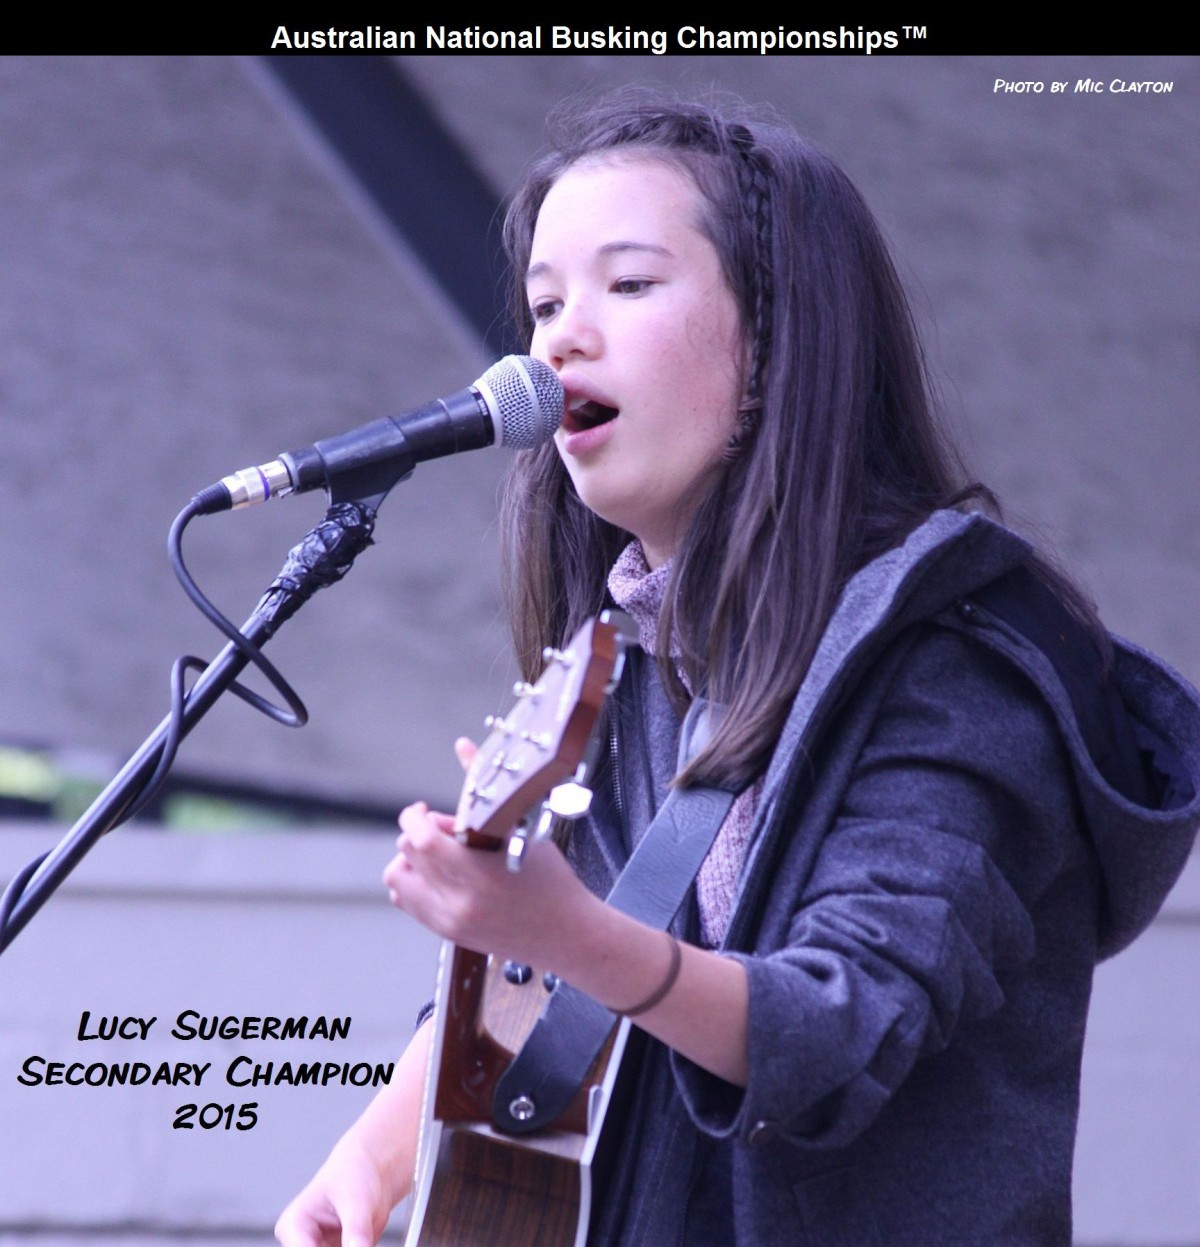 Lucy Sugerman 2015